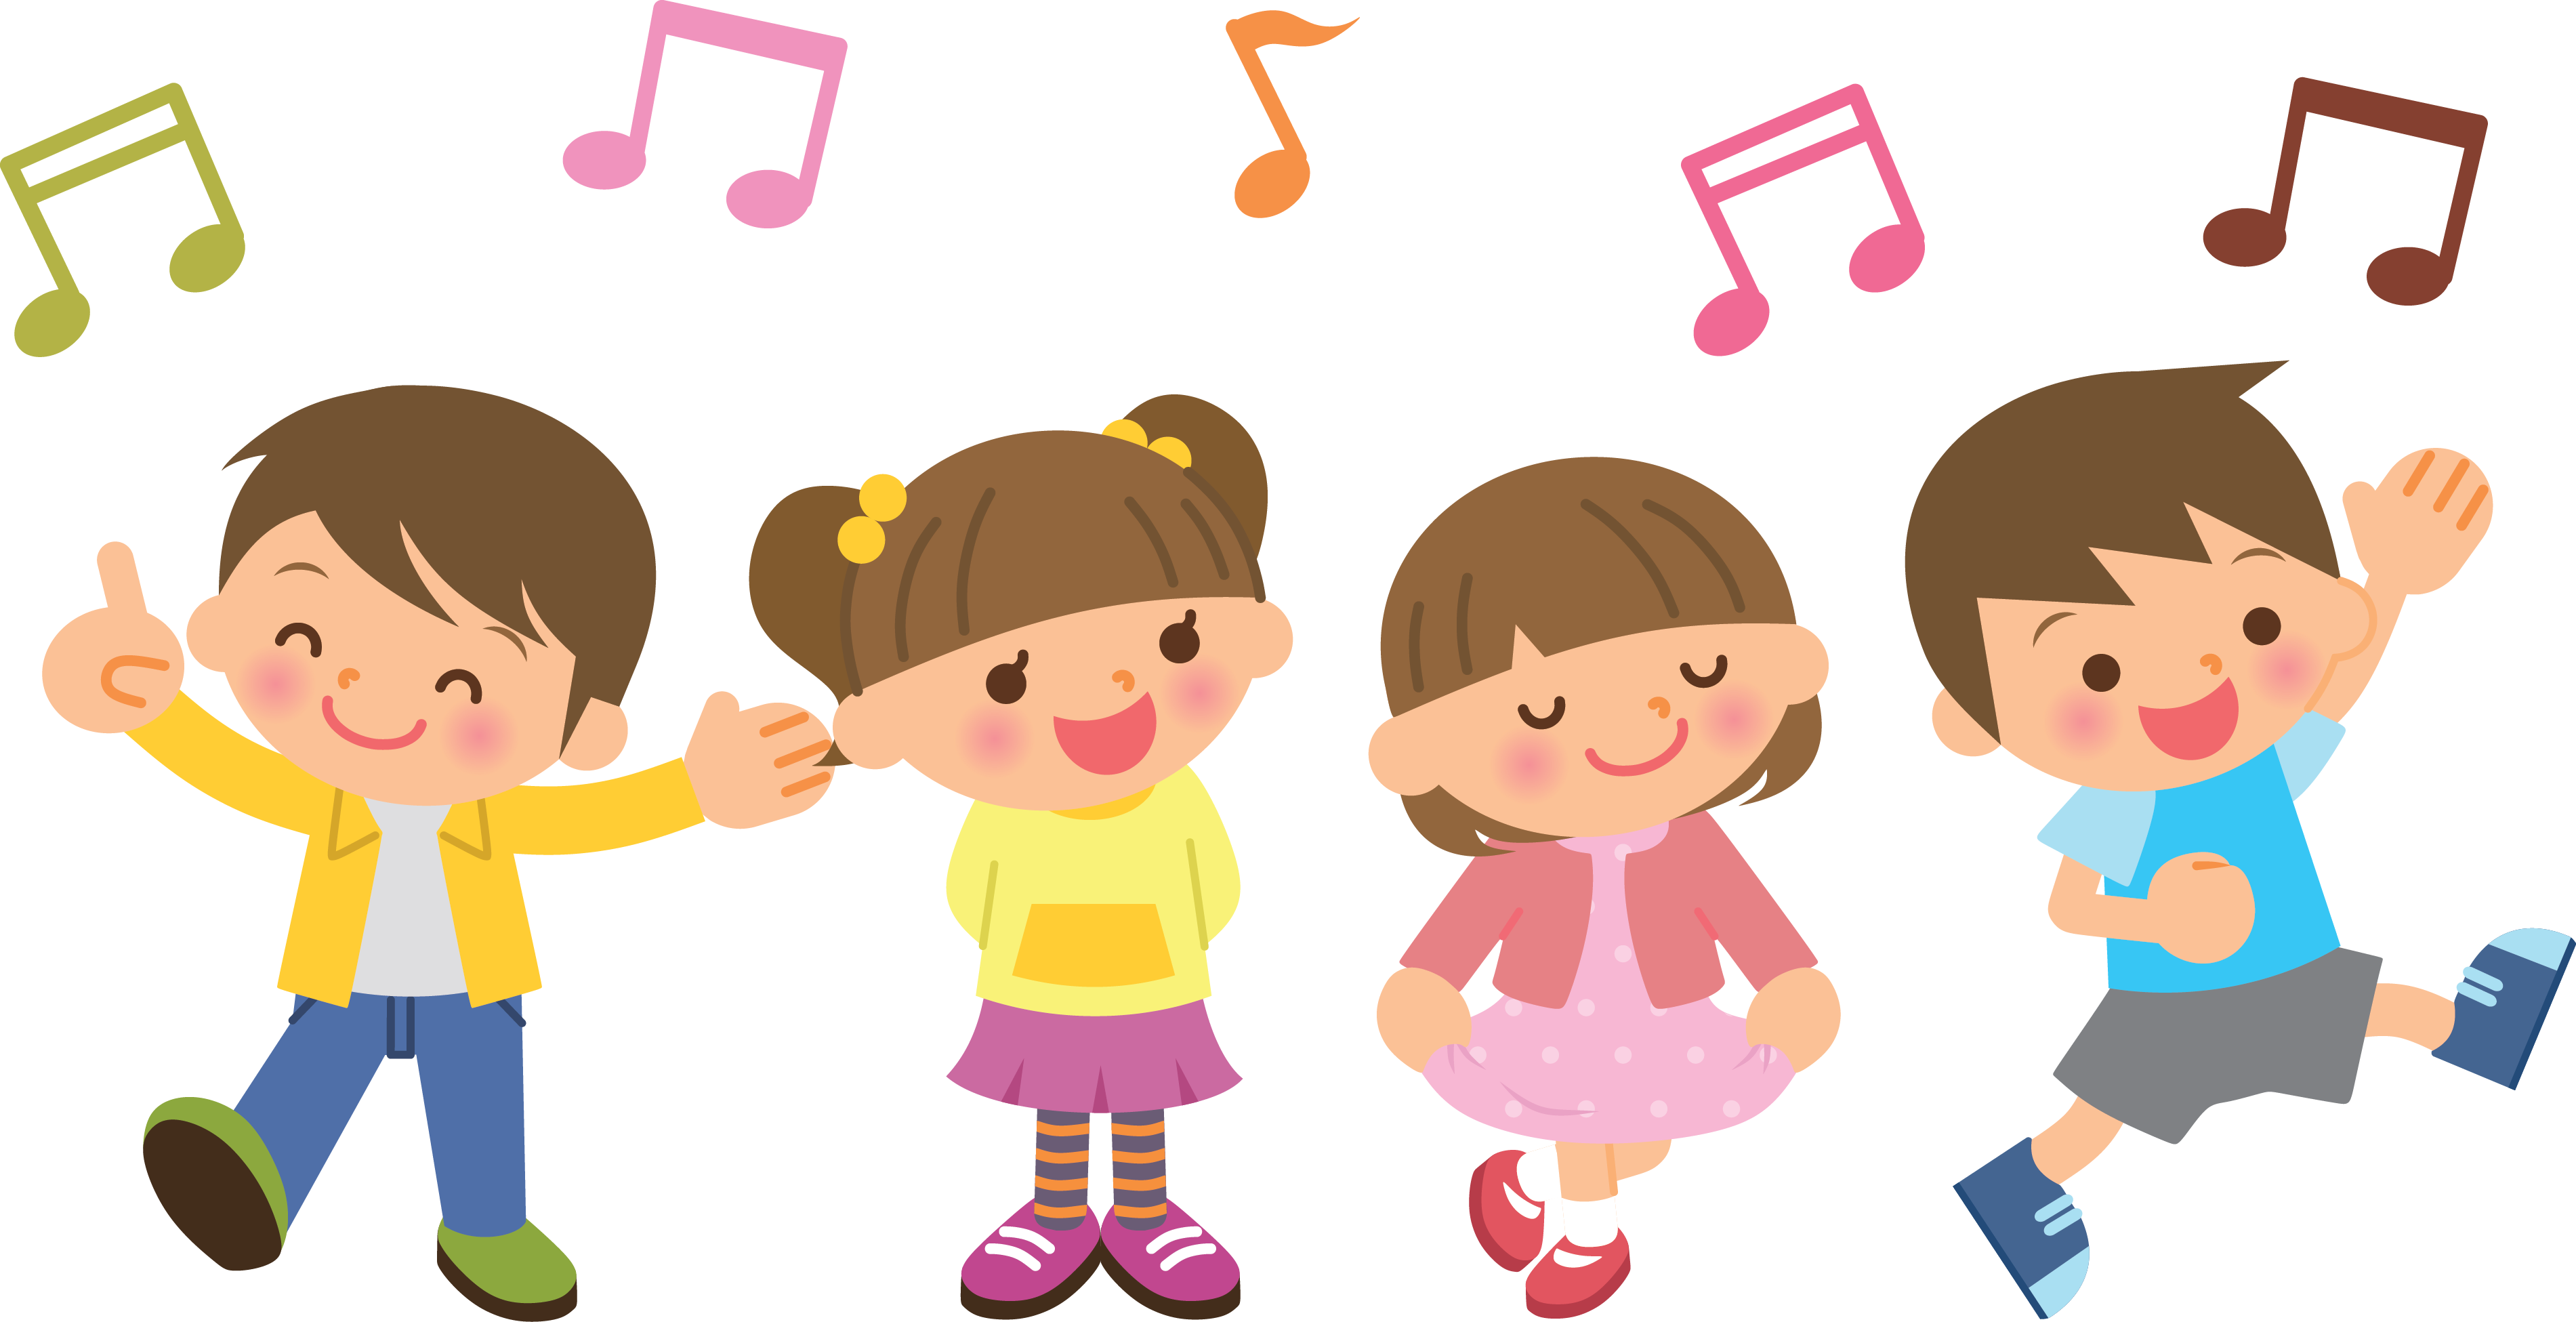 Singer vector kids. The song shul children